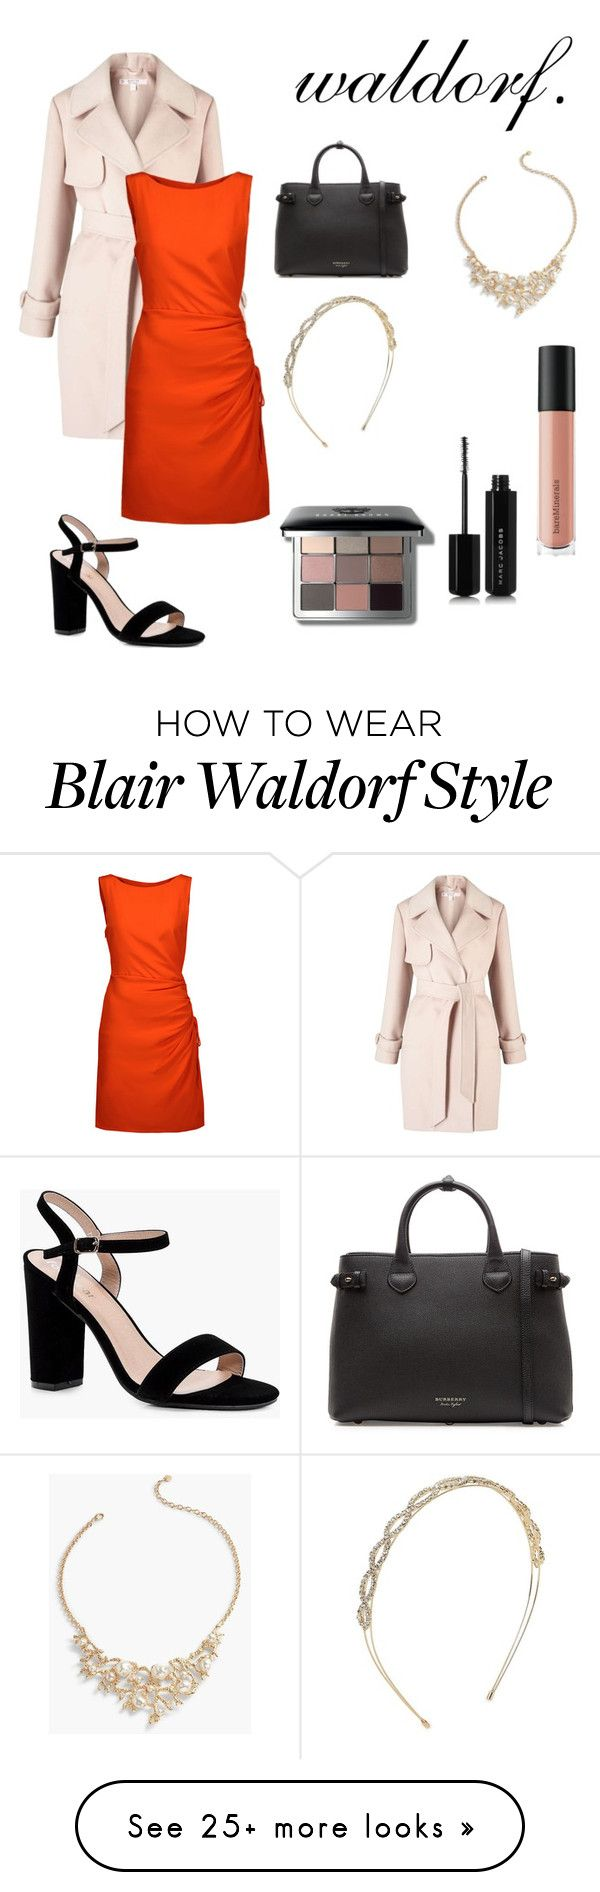 """""""blair waldorf // red"""" by mcnaknak on Polyvore featuring Miss Selfridge, Moschino, Boohoo, Burberry, Talbots, Bare Escentuals, Cara, Bobbi Brown Cosmetics, Marc Jacobs and modern"""